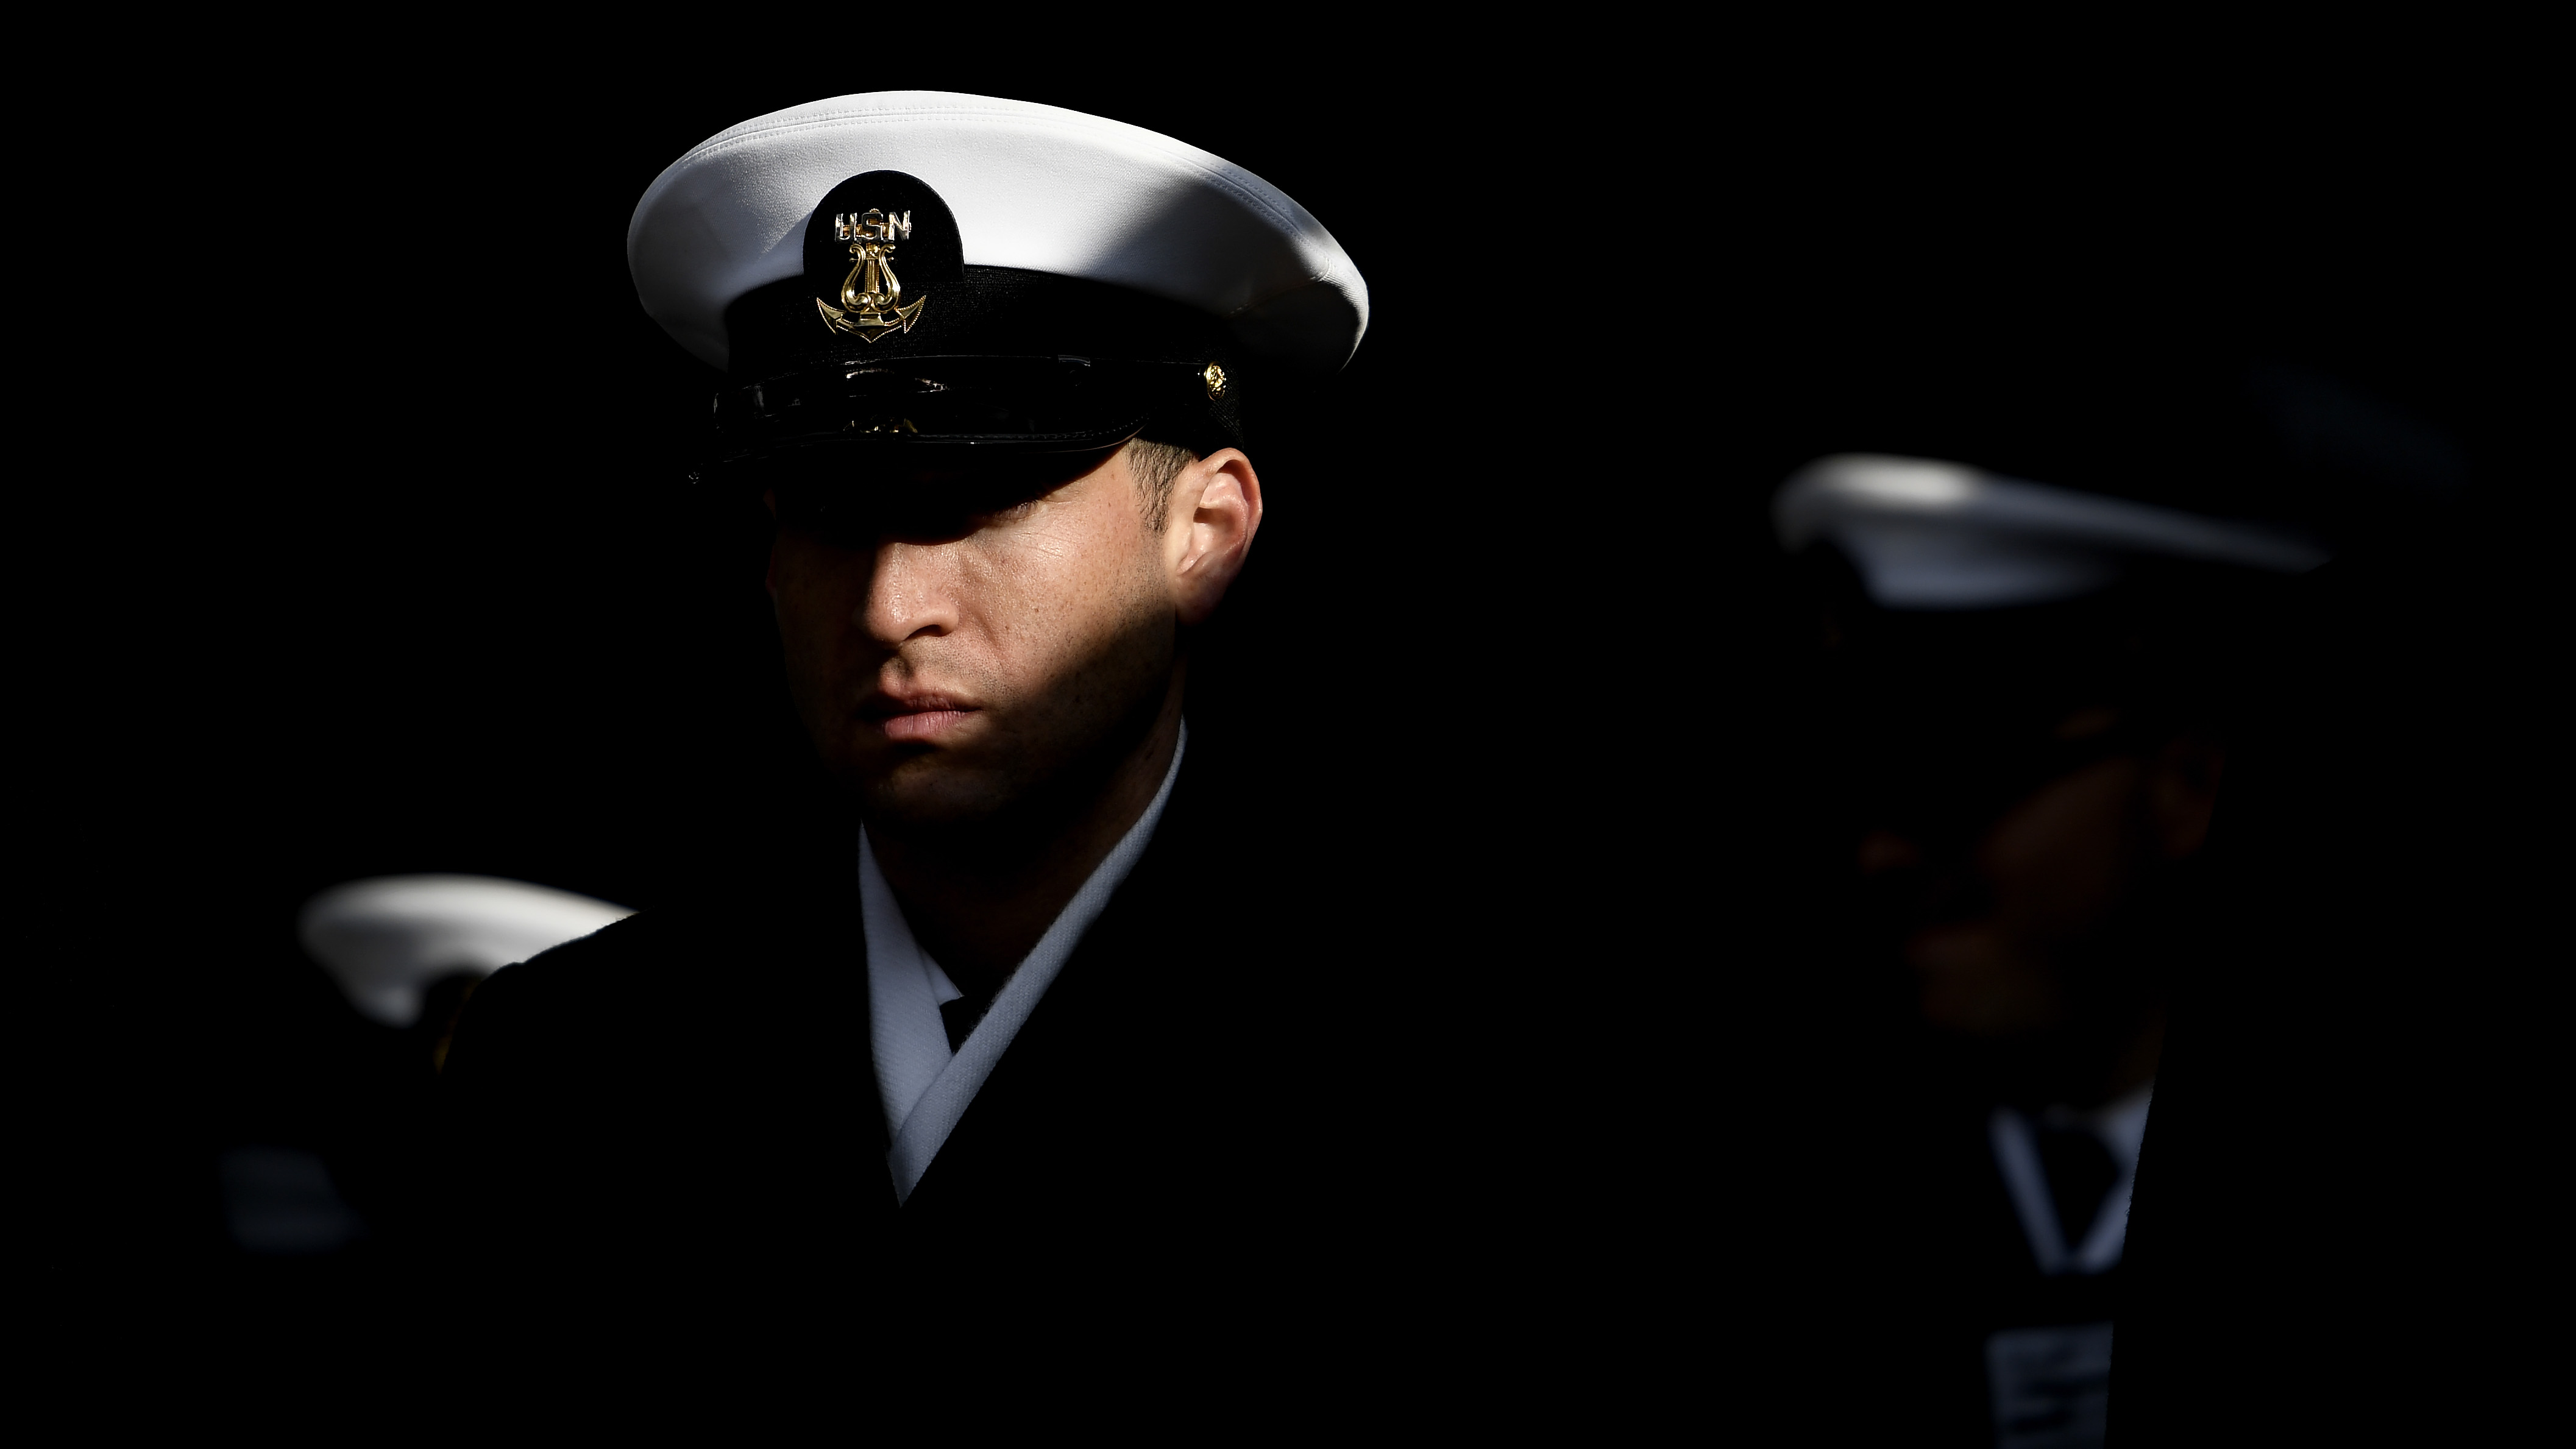 A Navy Cadet waits in the tunnel prior to marching on to the field before the start of the game against Army Black Knights at Lincoln Financial Field on December 08, 2018 in Philadelphia, Pennsylvania. (Photo by Sarah Stier/Getty Images)